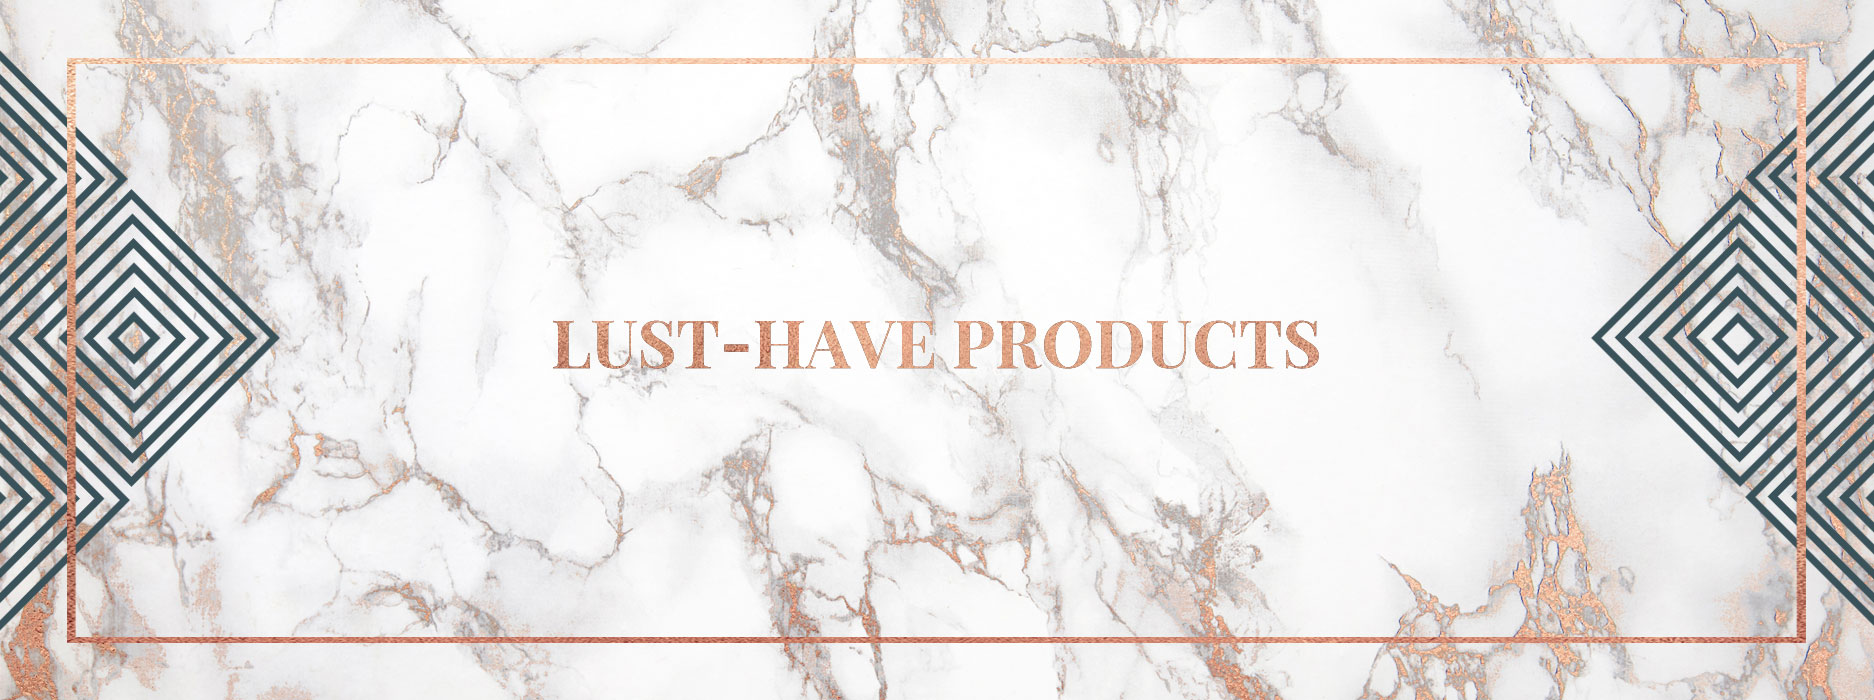 lust have products curated content